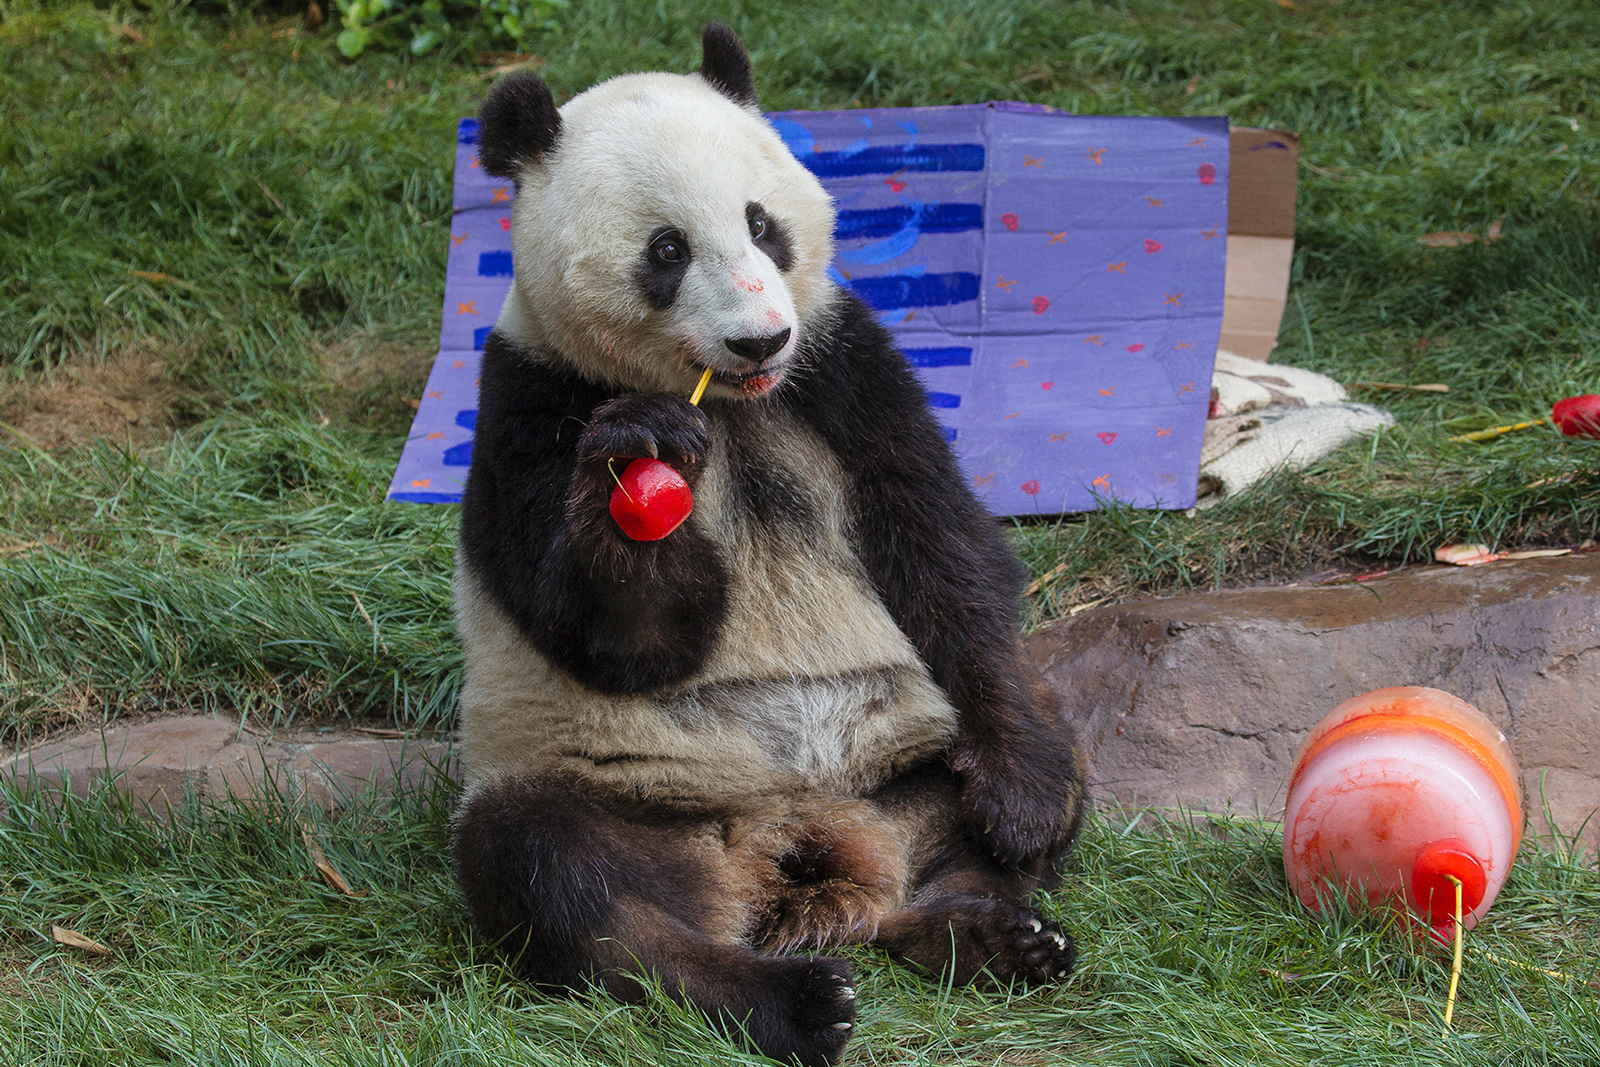 Xiao Liwu's fourth birthday